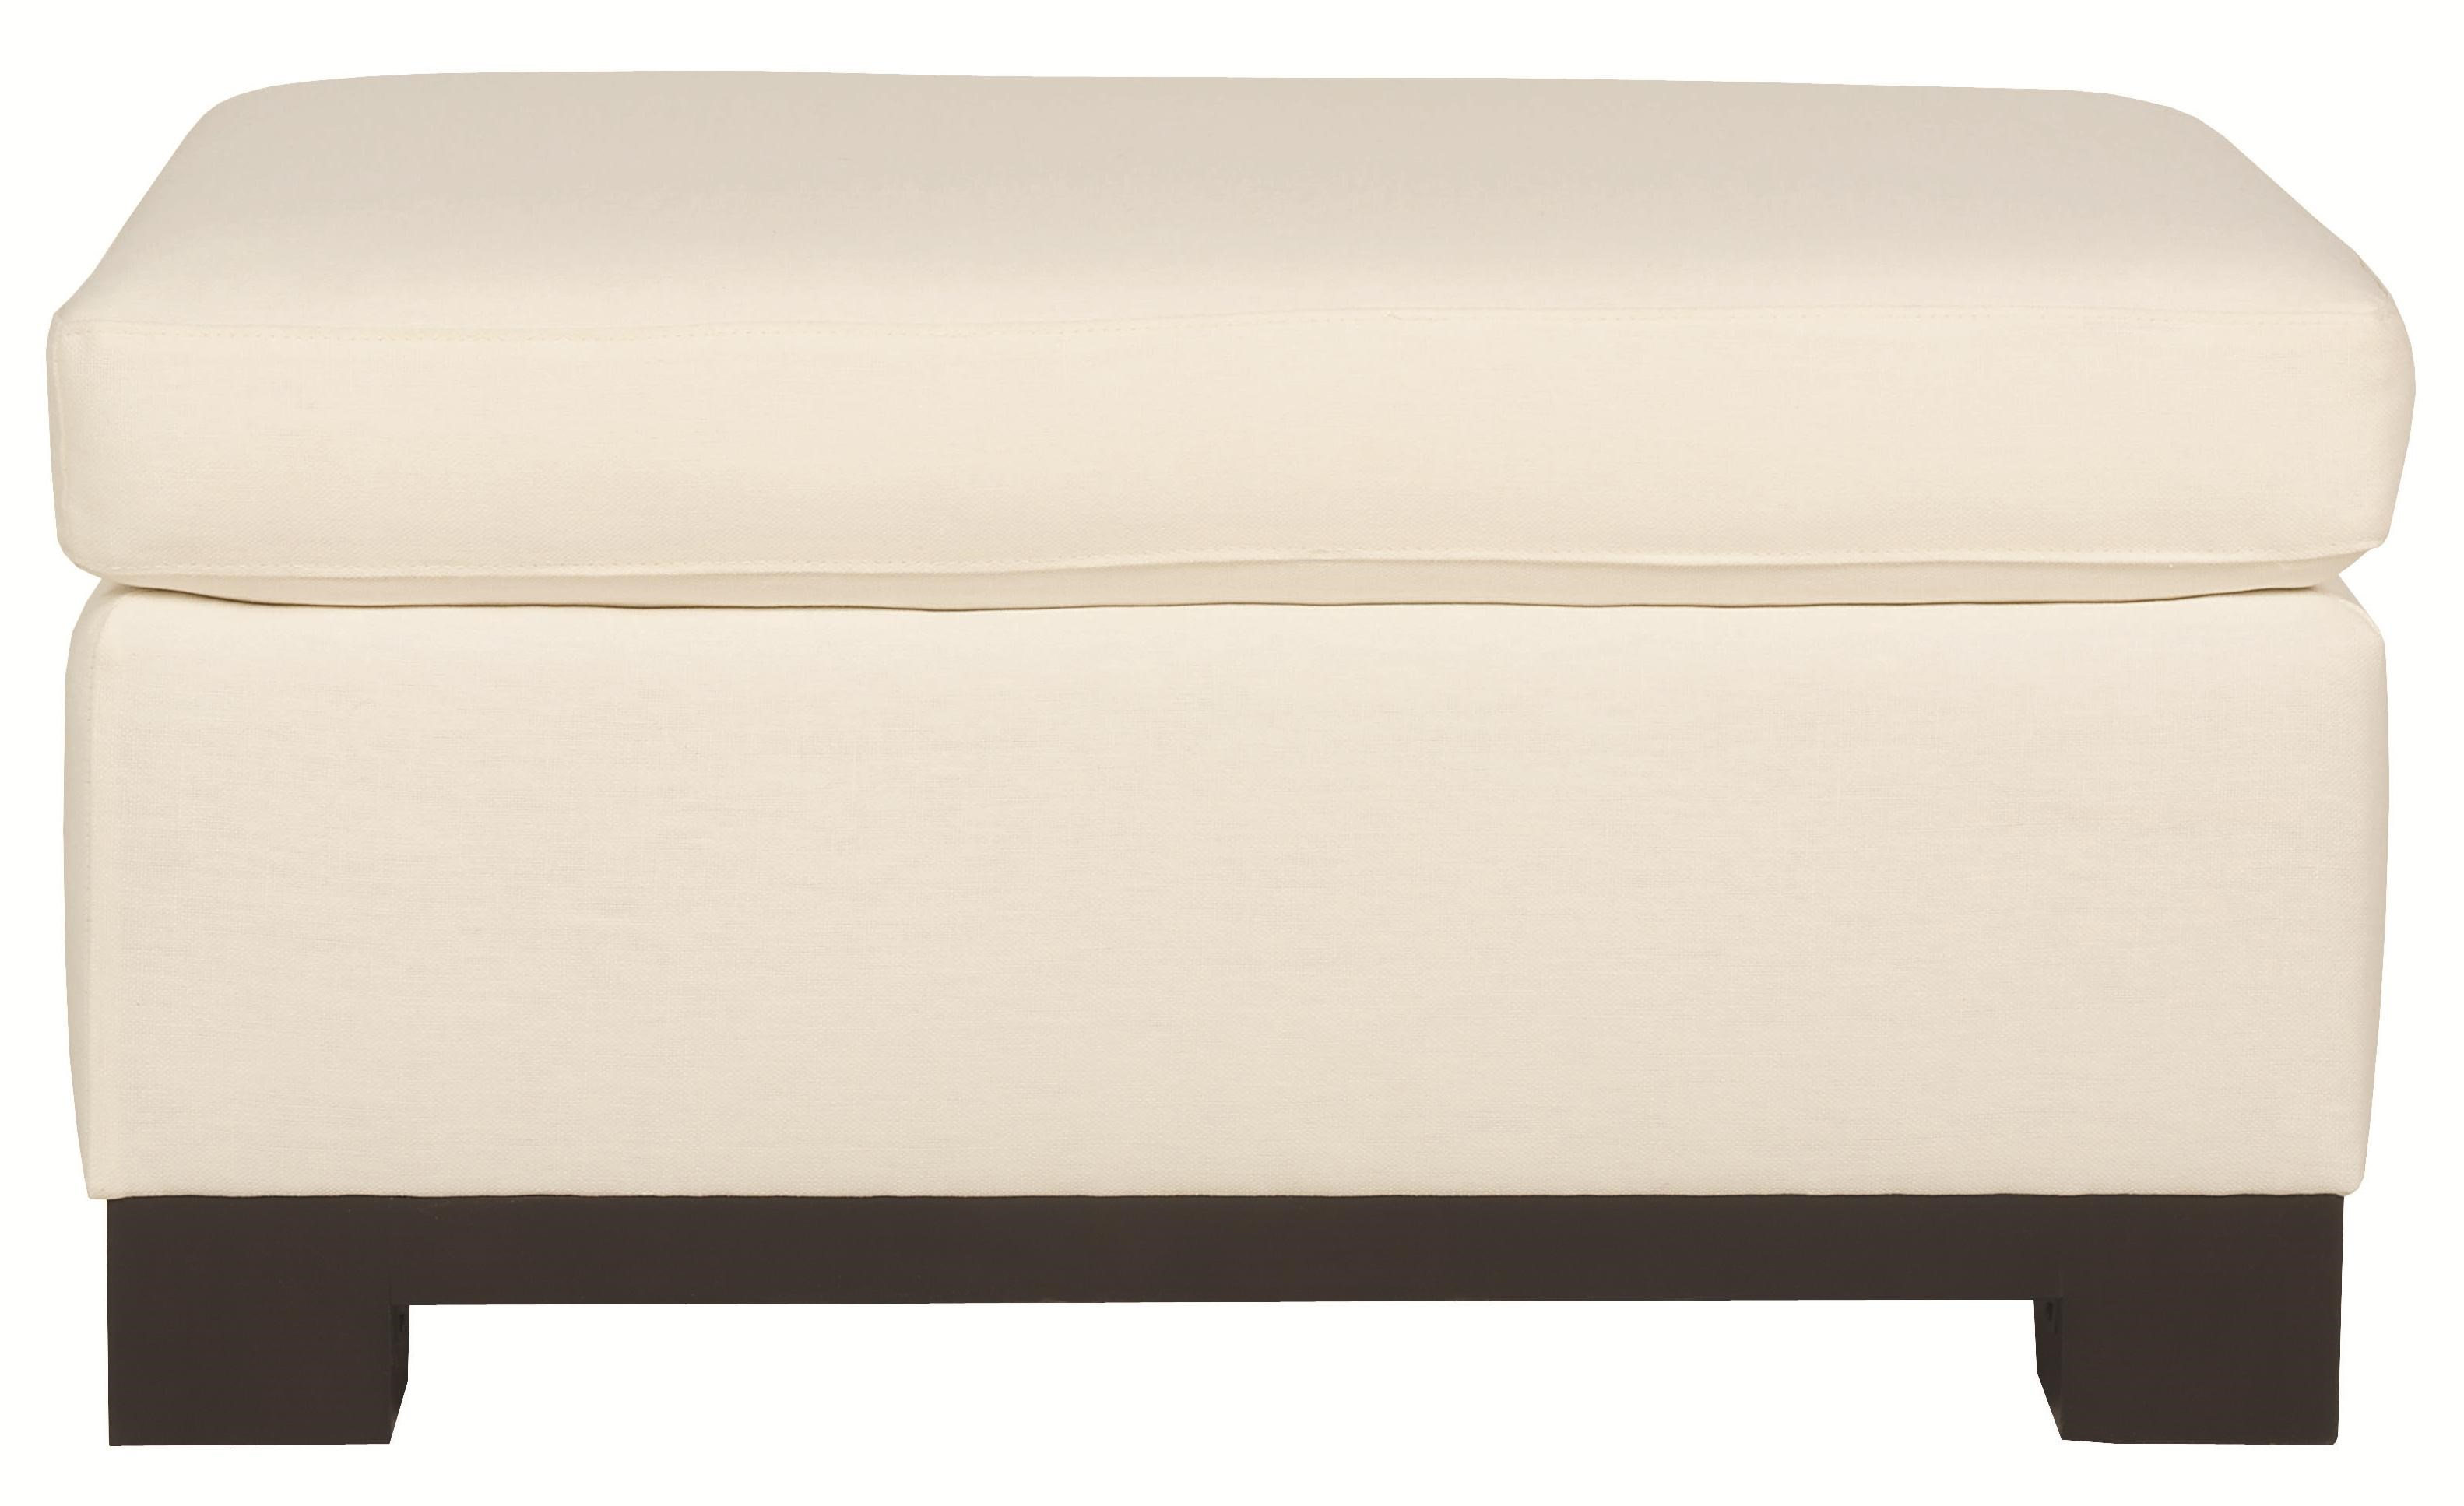 Bernhardt Lanai Simply Styled Ottoman with Casual  : lanai20n165n1651 bjpgscalebothampwidth500ampheight500ampfsharpen25ampdown from www.belfortfurniture.com size 500 x 500 jpeg 14kB